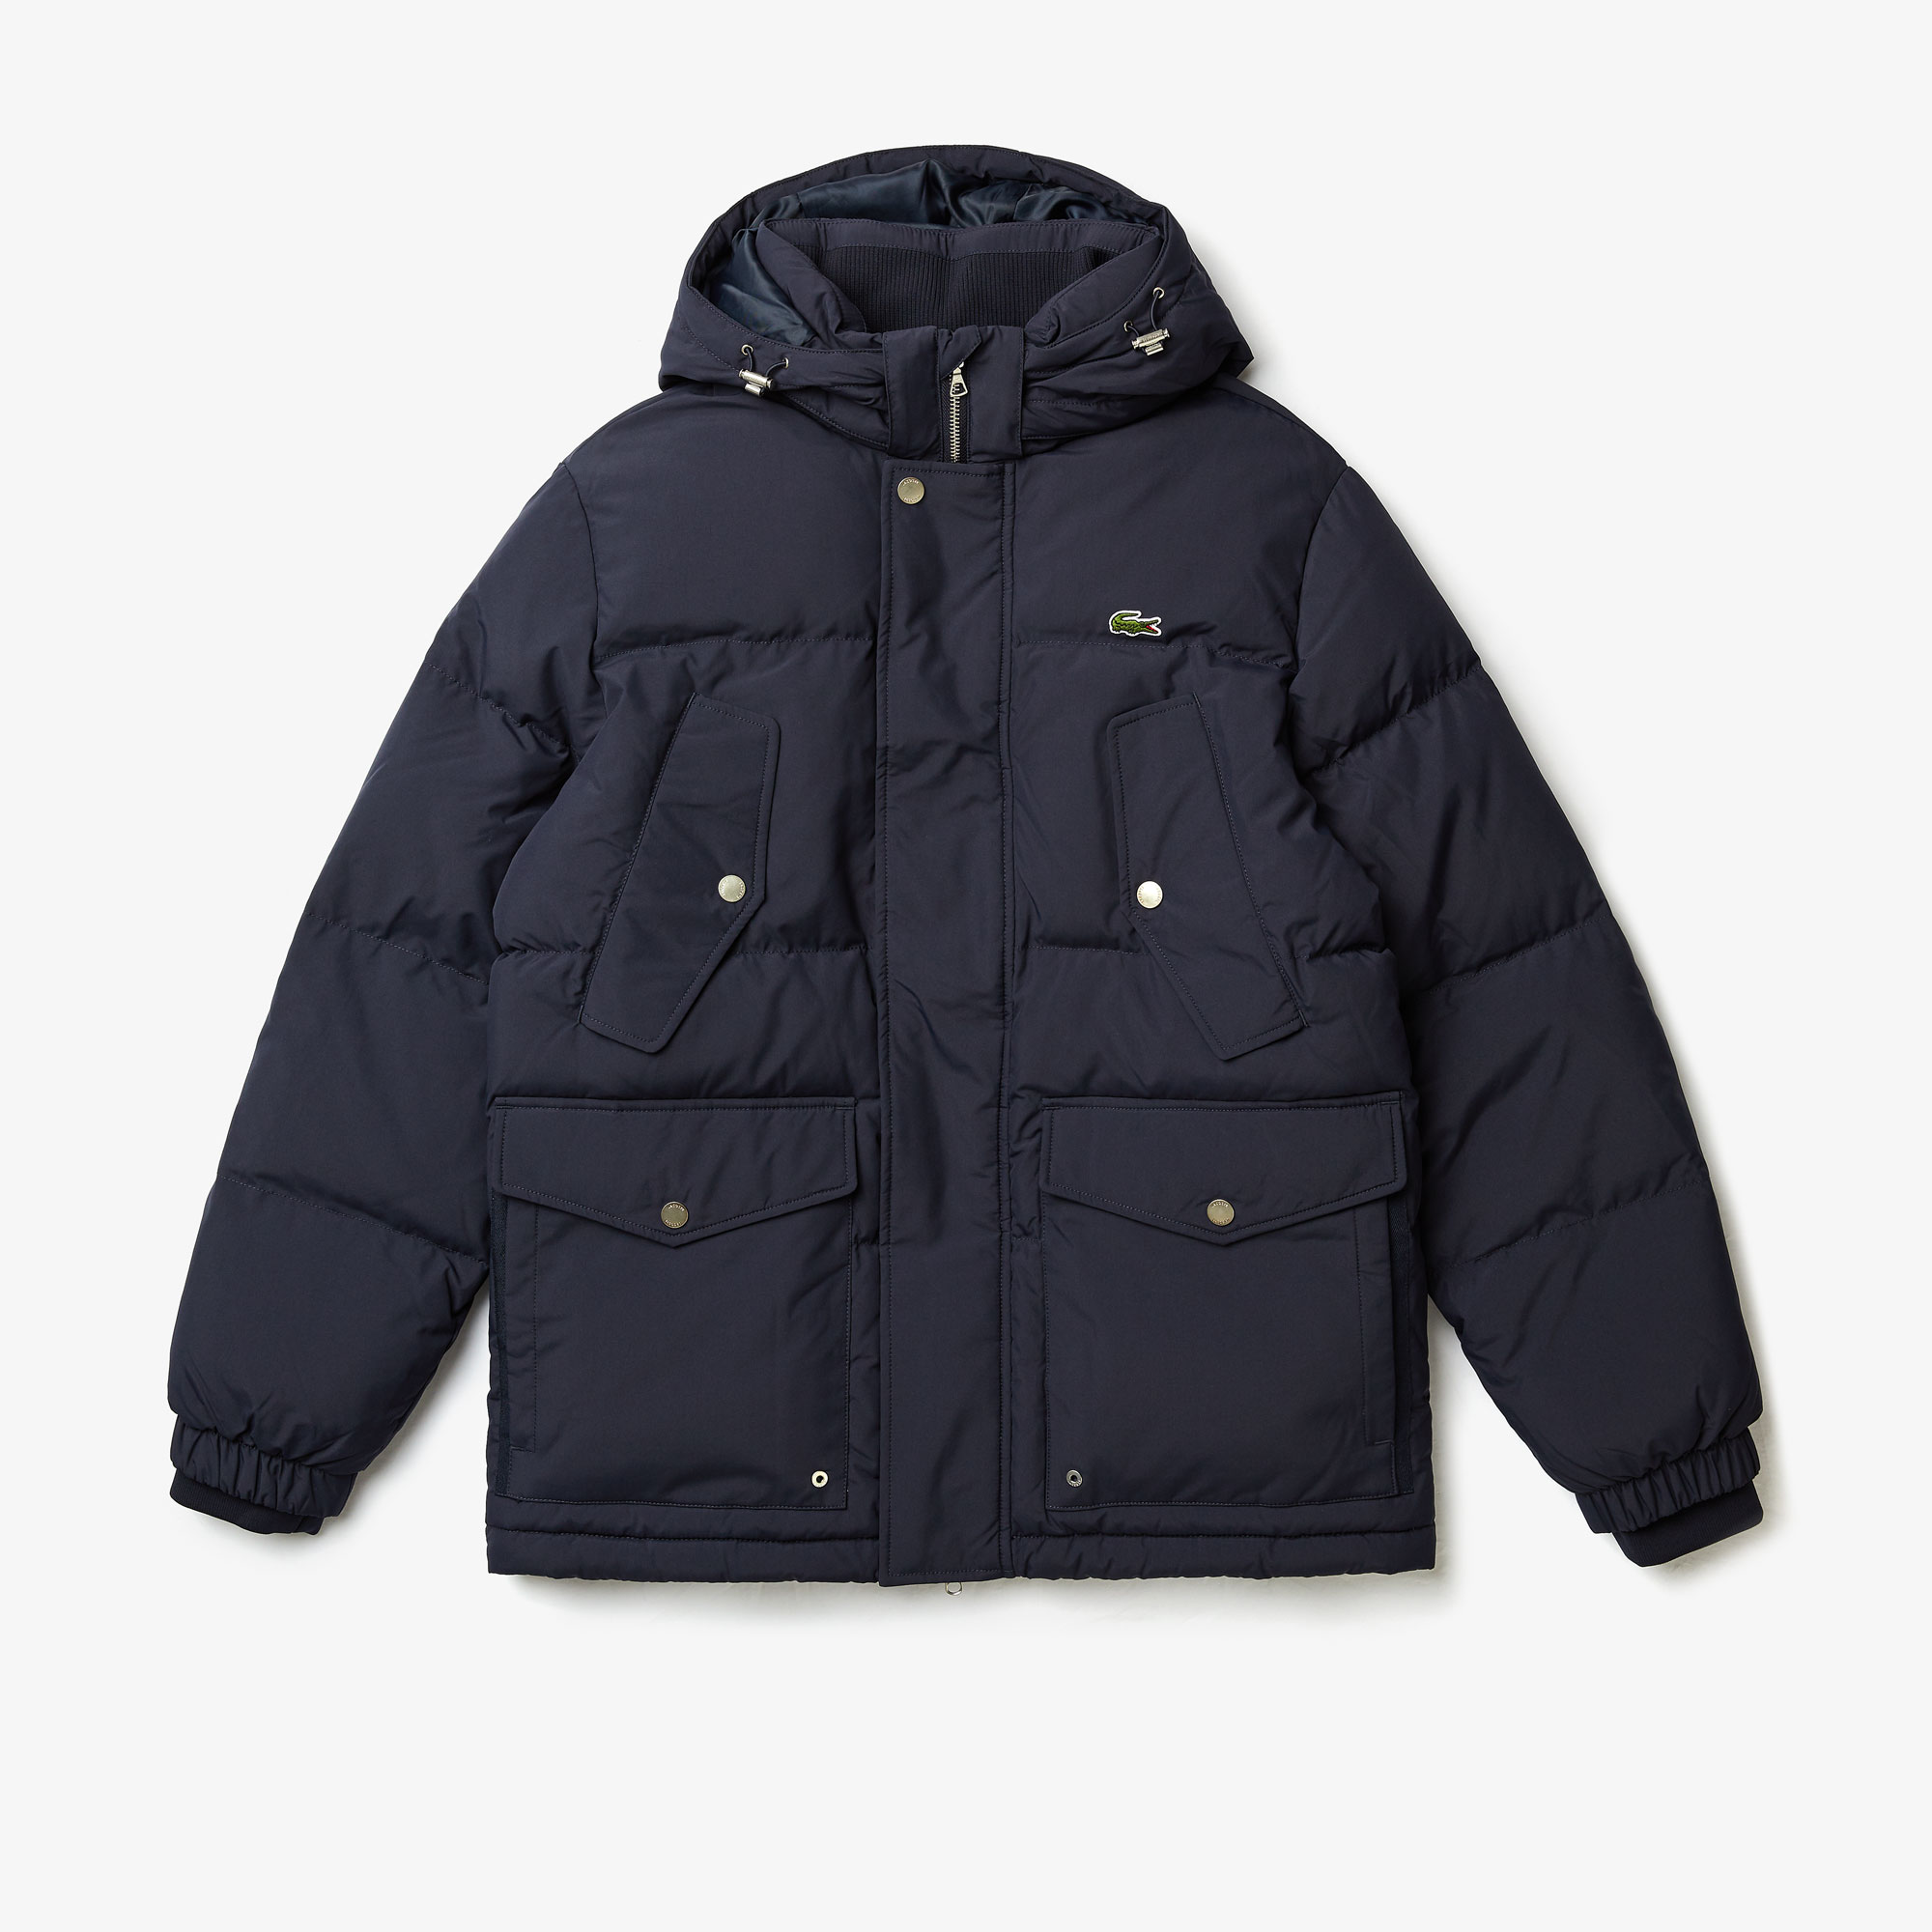 Lacoste Jackets Men's Detachable Hood Water-Resistant Quilted Jacket